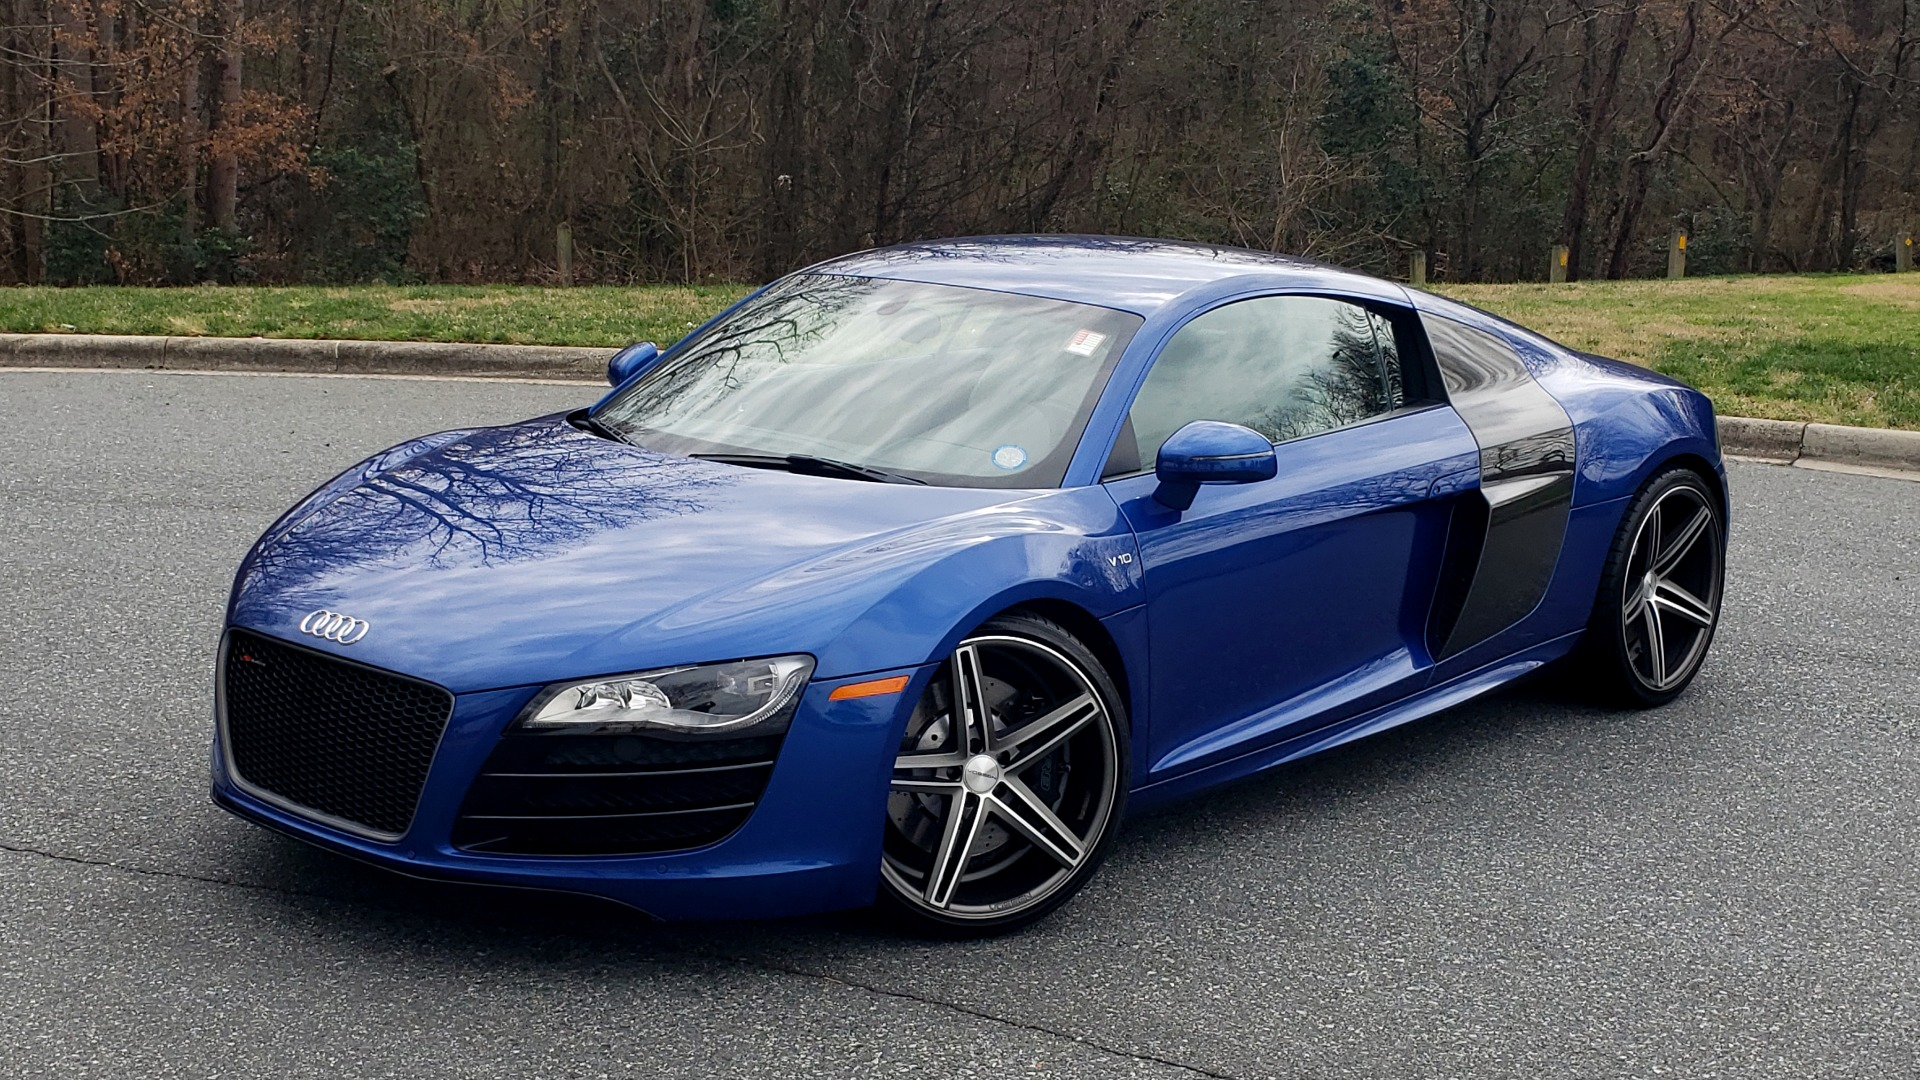 Used 2010 Audi R8 5.2L V10 / AWD / NAV / B&O SND / HTD STS / CUSTOM EXH & WHEELS for sale $78,000 at Formula Imports in Charlotte NC 28227 2